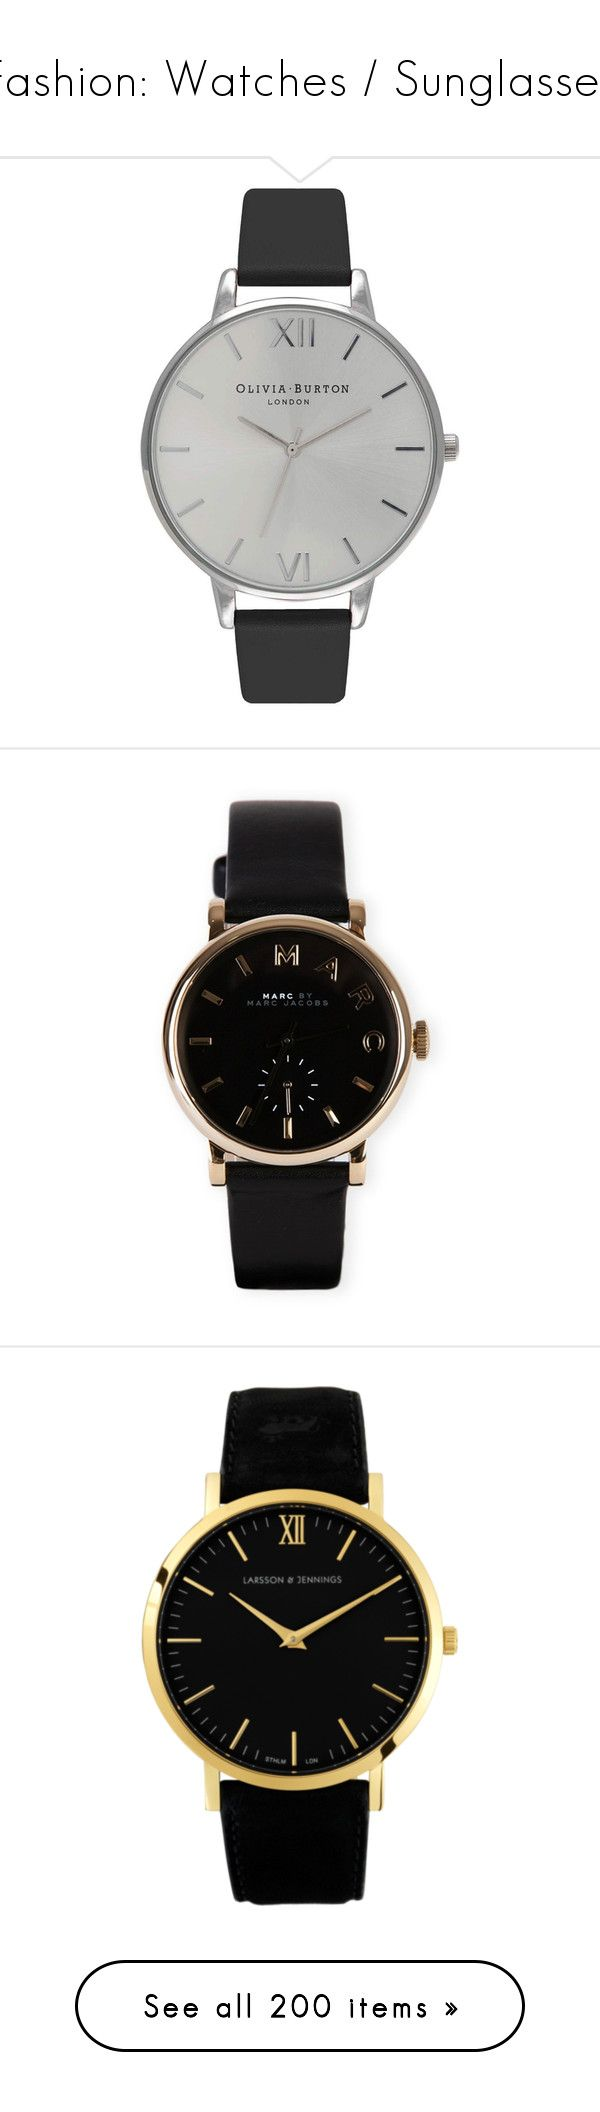 """Fashion: Watches / Sunglasses"" by katiasitems on Polyvore featuring watches, jewelry, accessories, bracelets, relojes, marc by marc jacobs watches, leather strap watches, black and gold jewelry, black gold jewelry and black and gold watches"